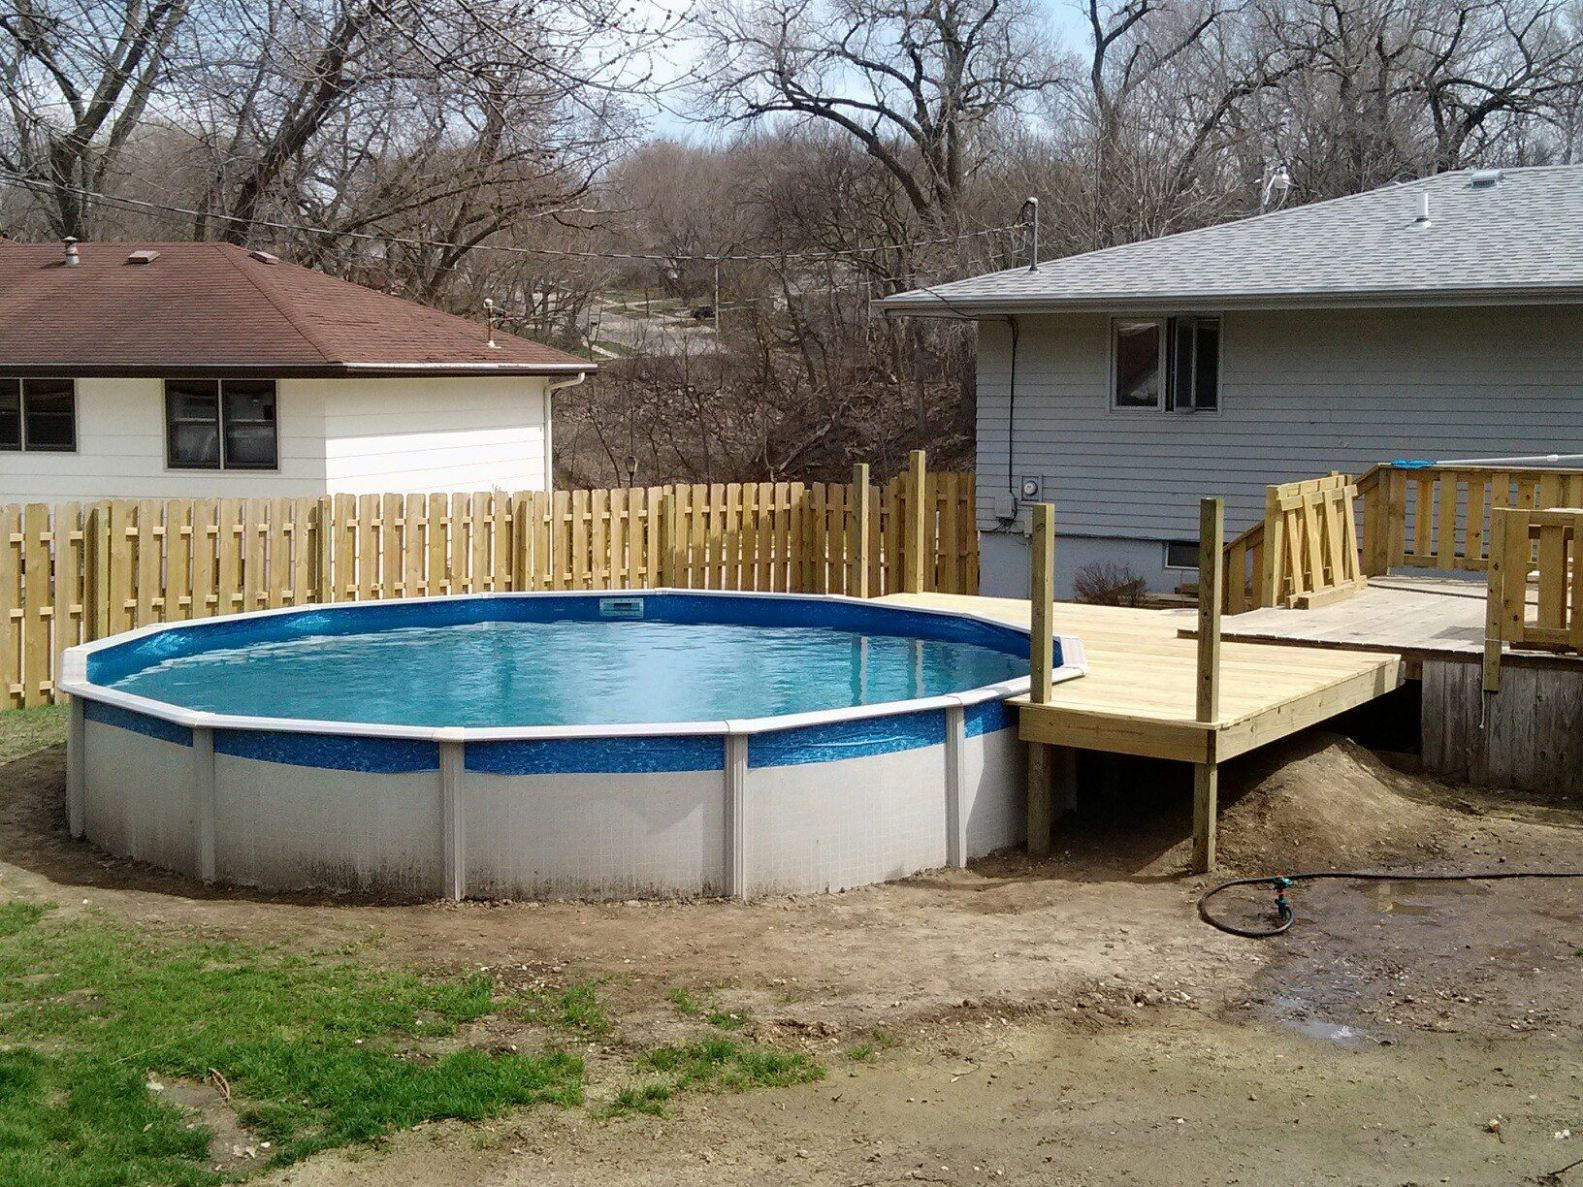 10' pool deck off of existing deck | Pool, Backyard retreat